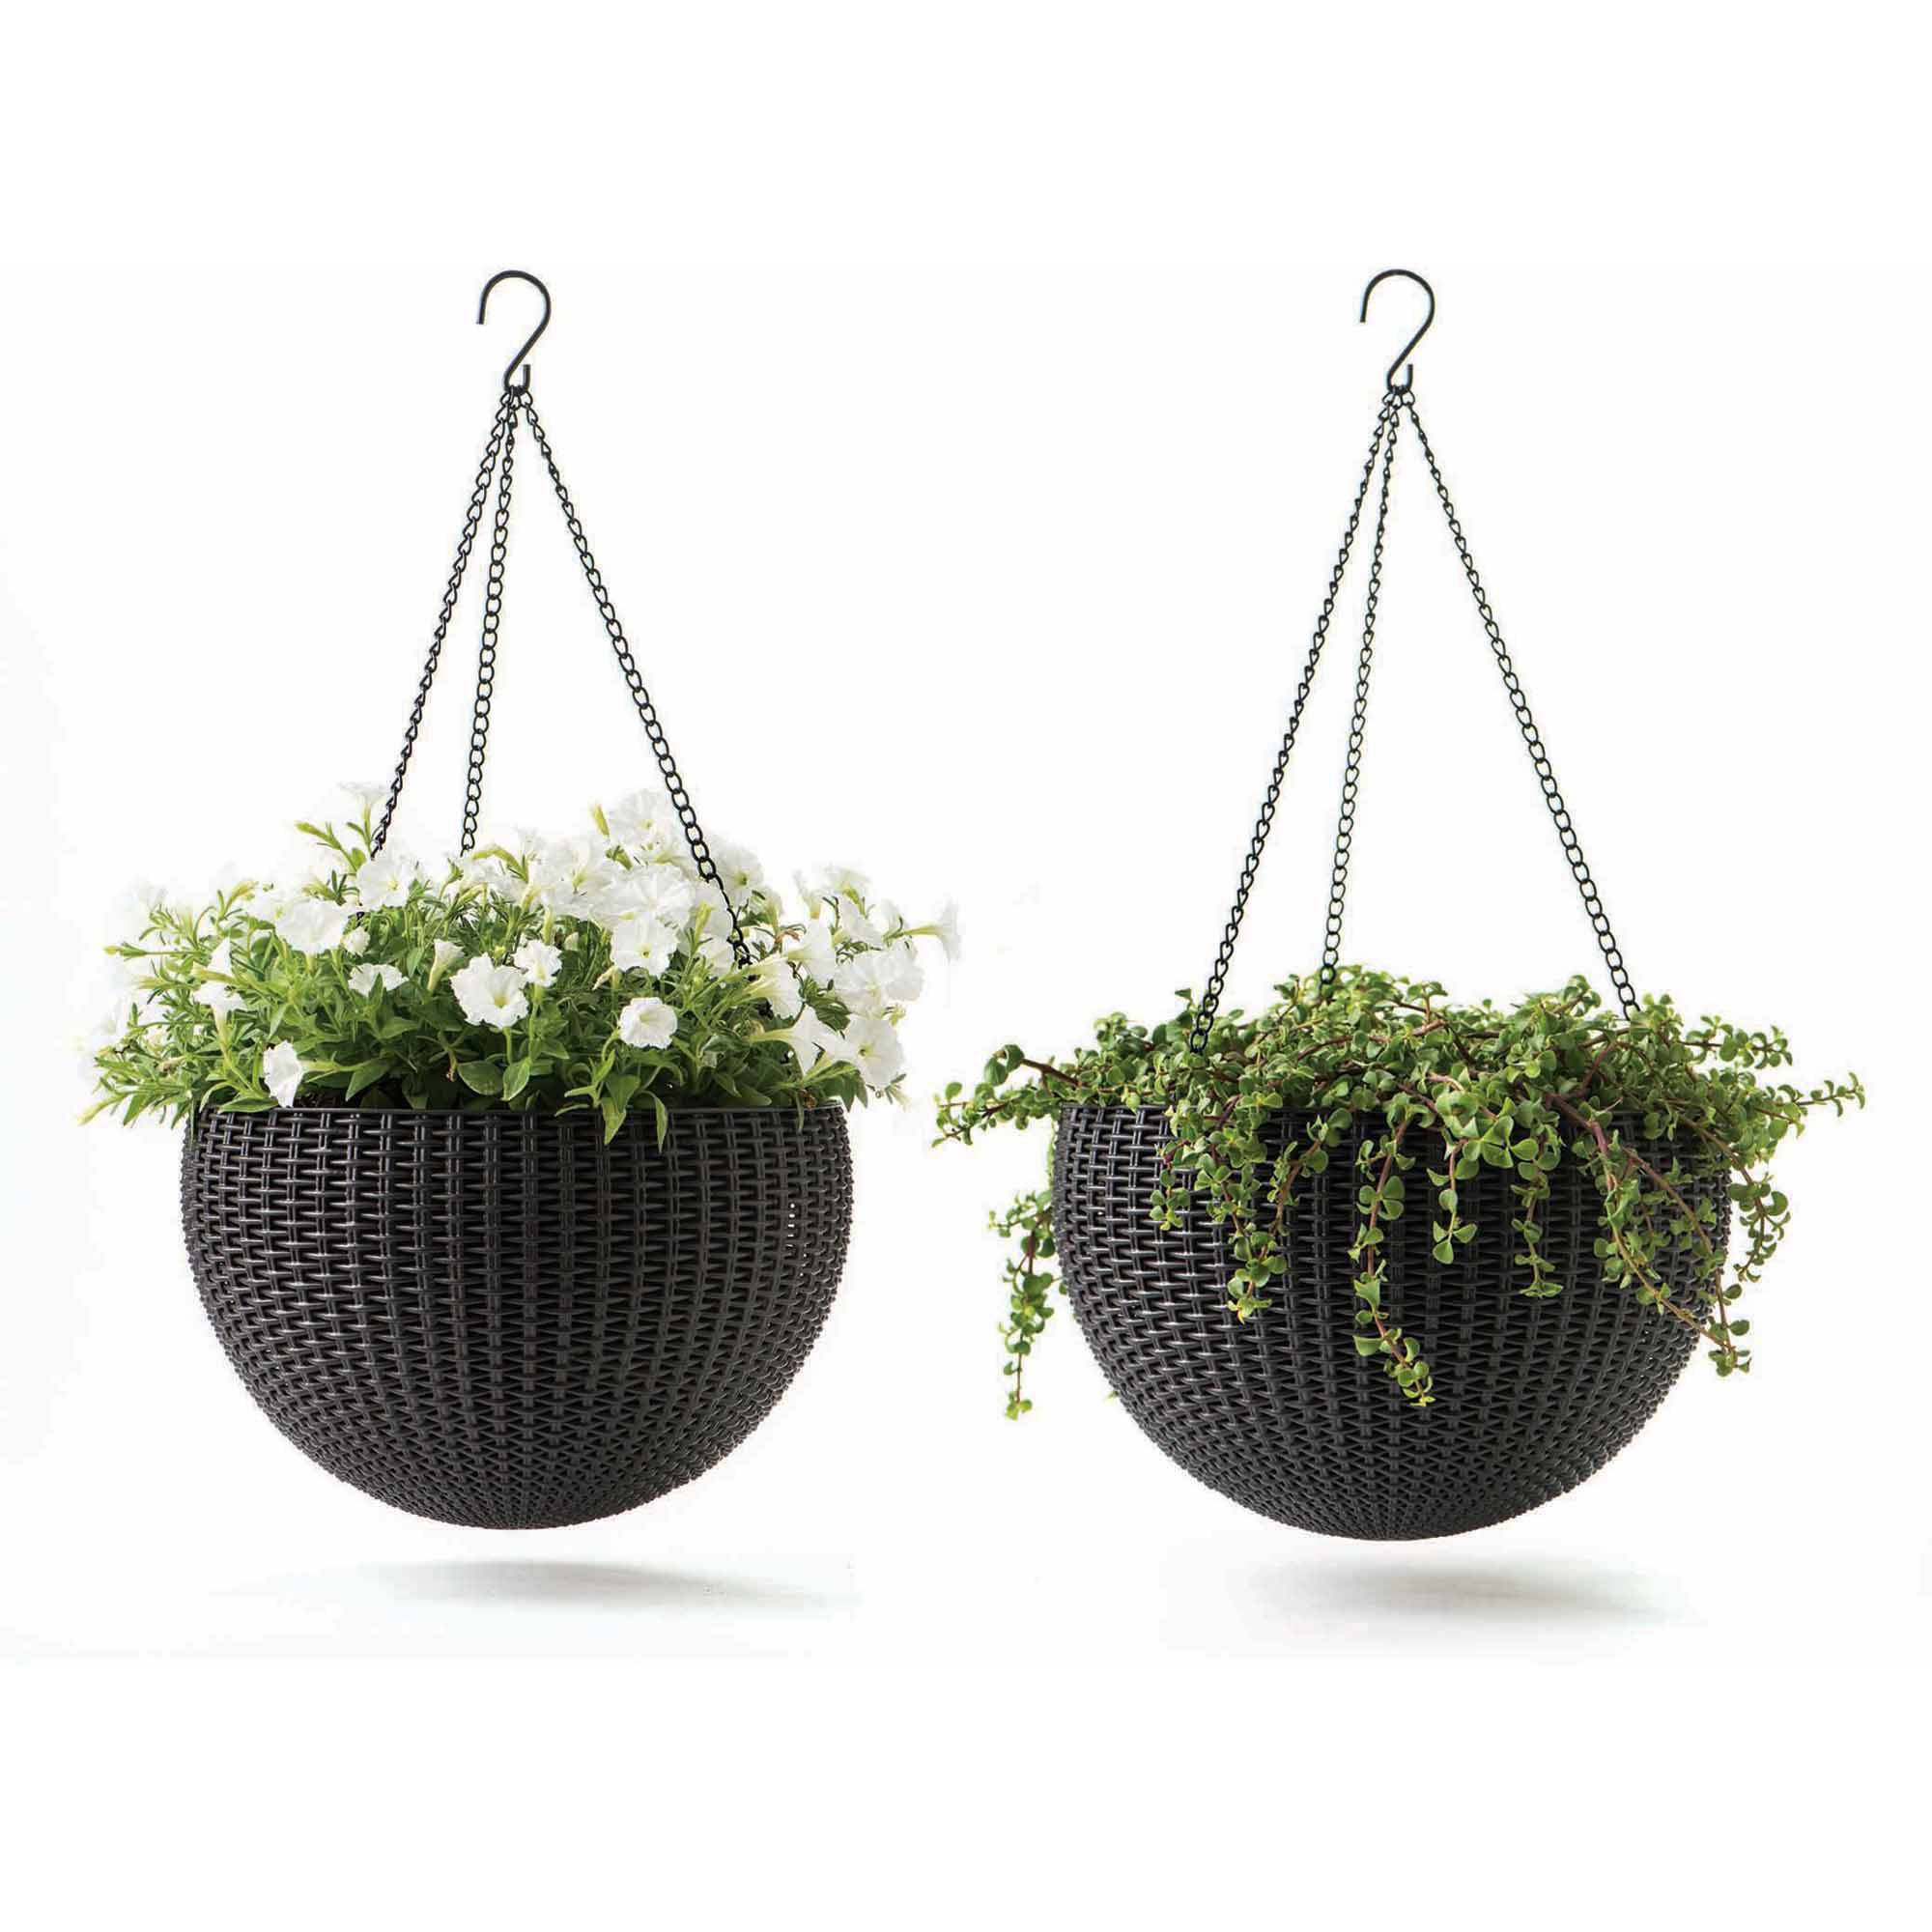 Keter Round Resin Hanging Planters, 2pk, All-Weather Plastic ...